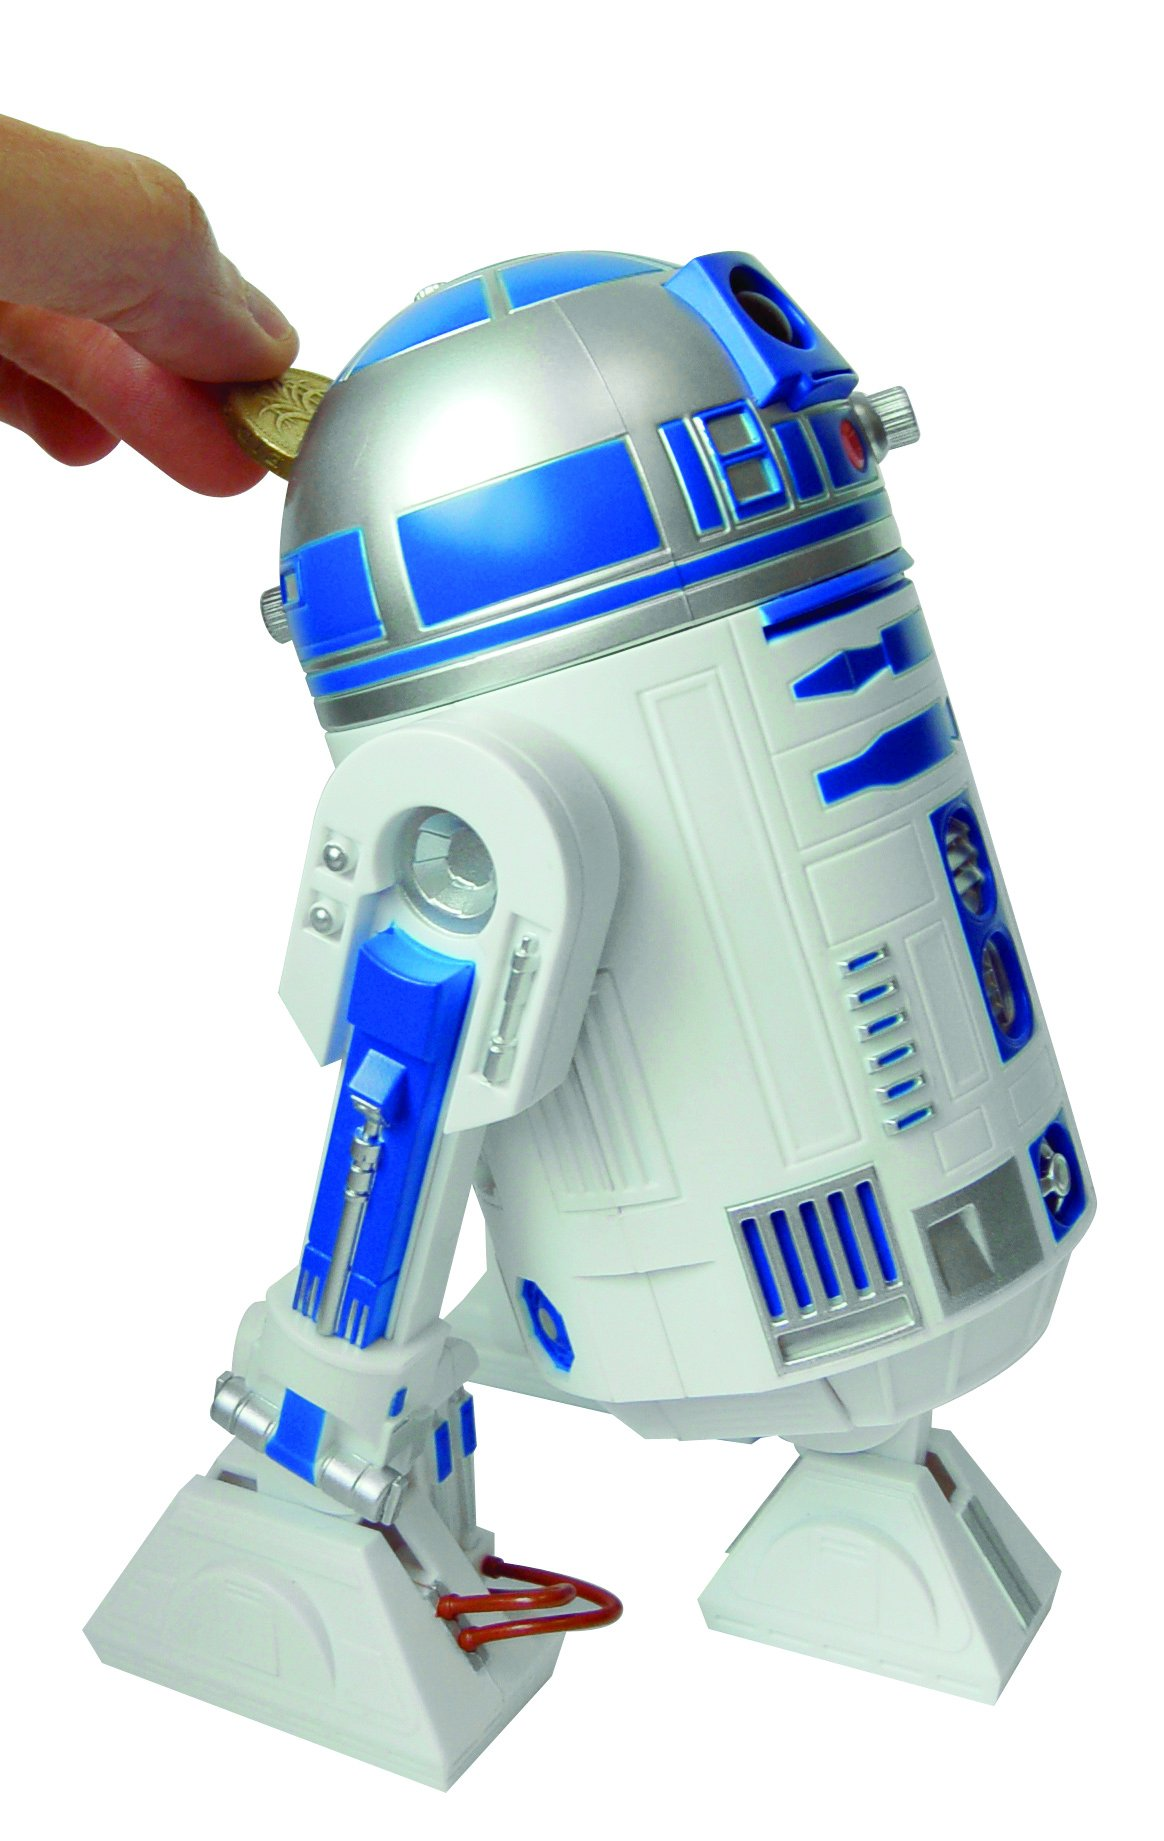 Wesco - GIFSTW010 - Star Wars - Tirelire - Parlante - R2D2 product image